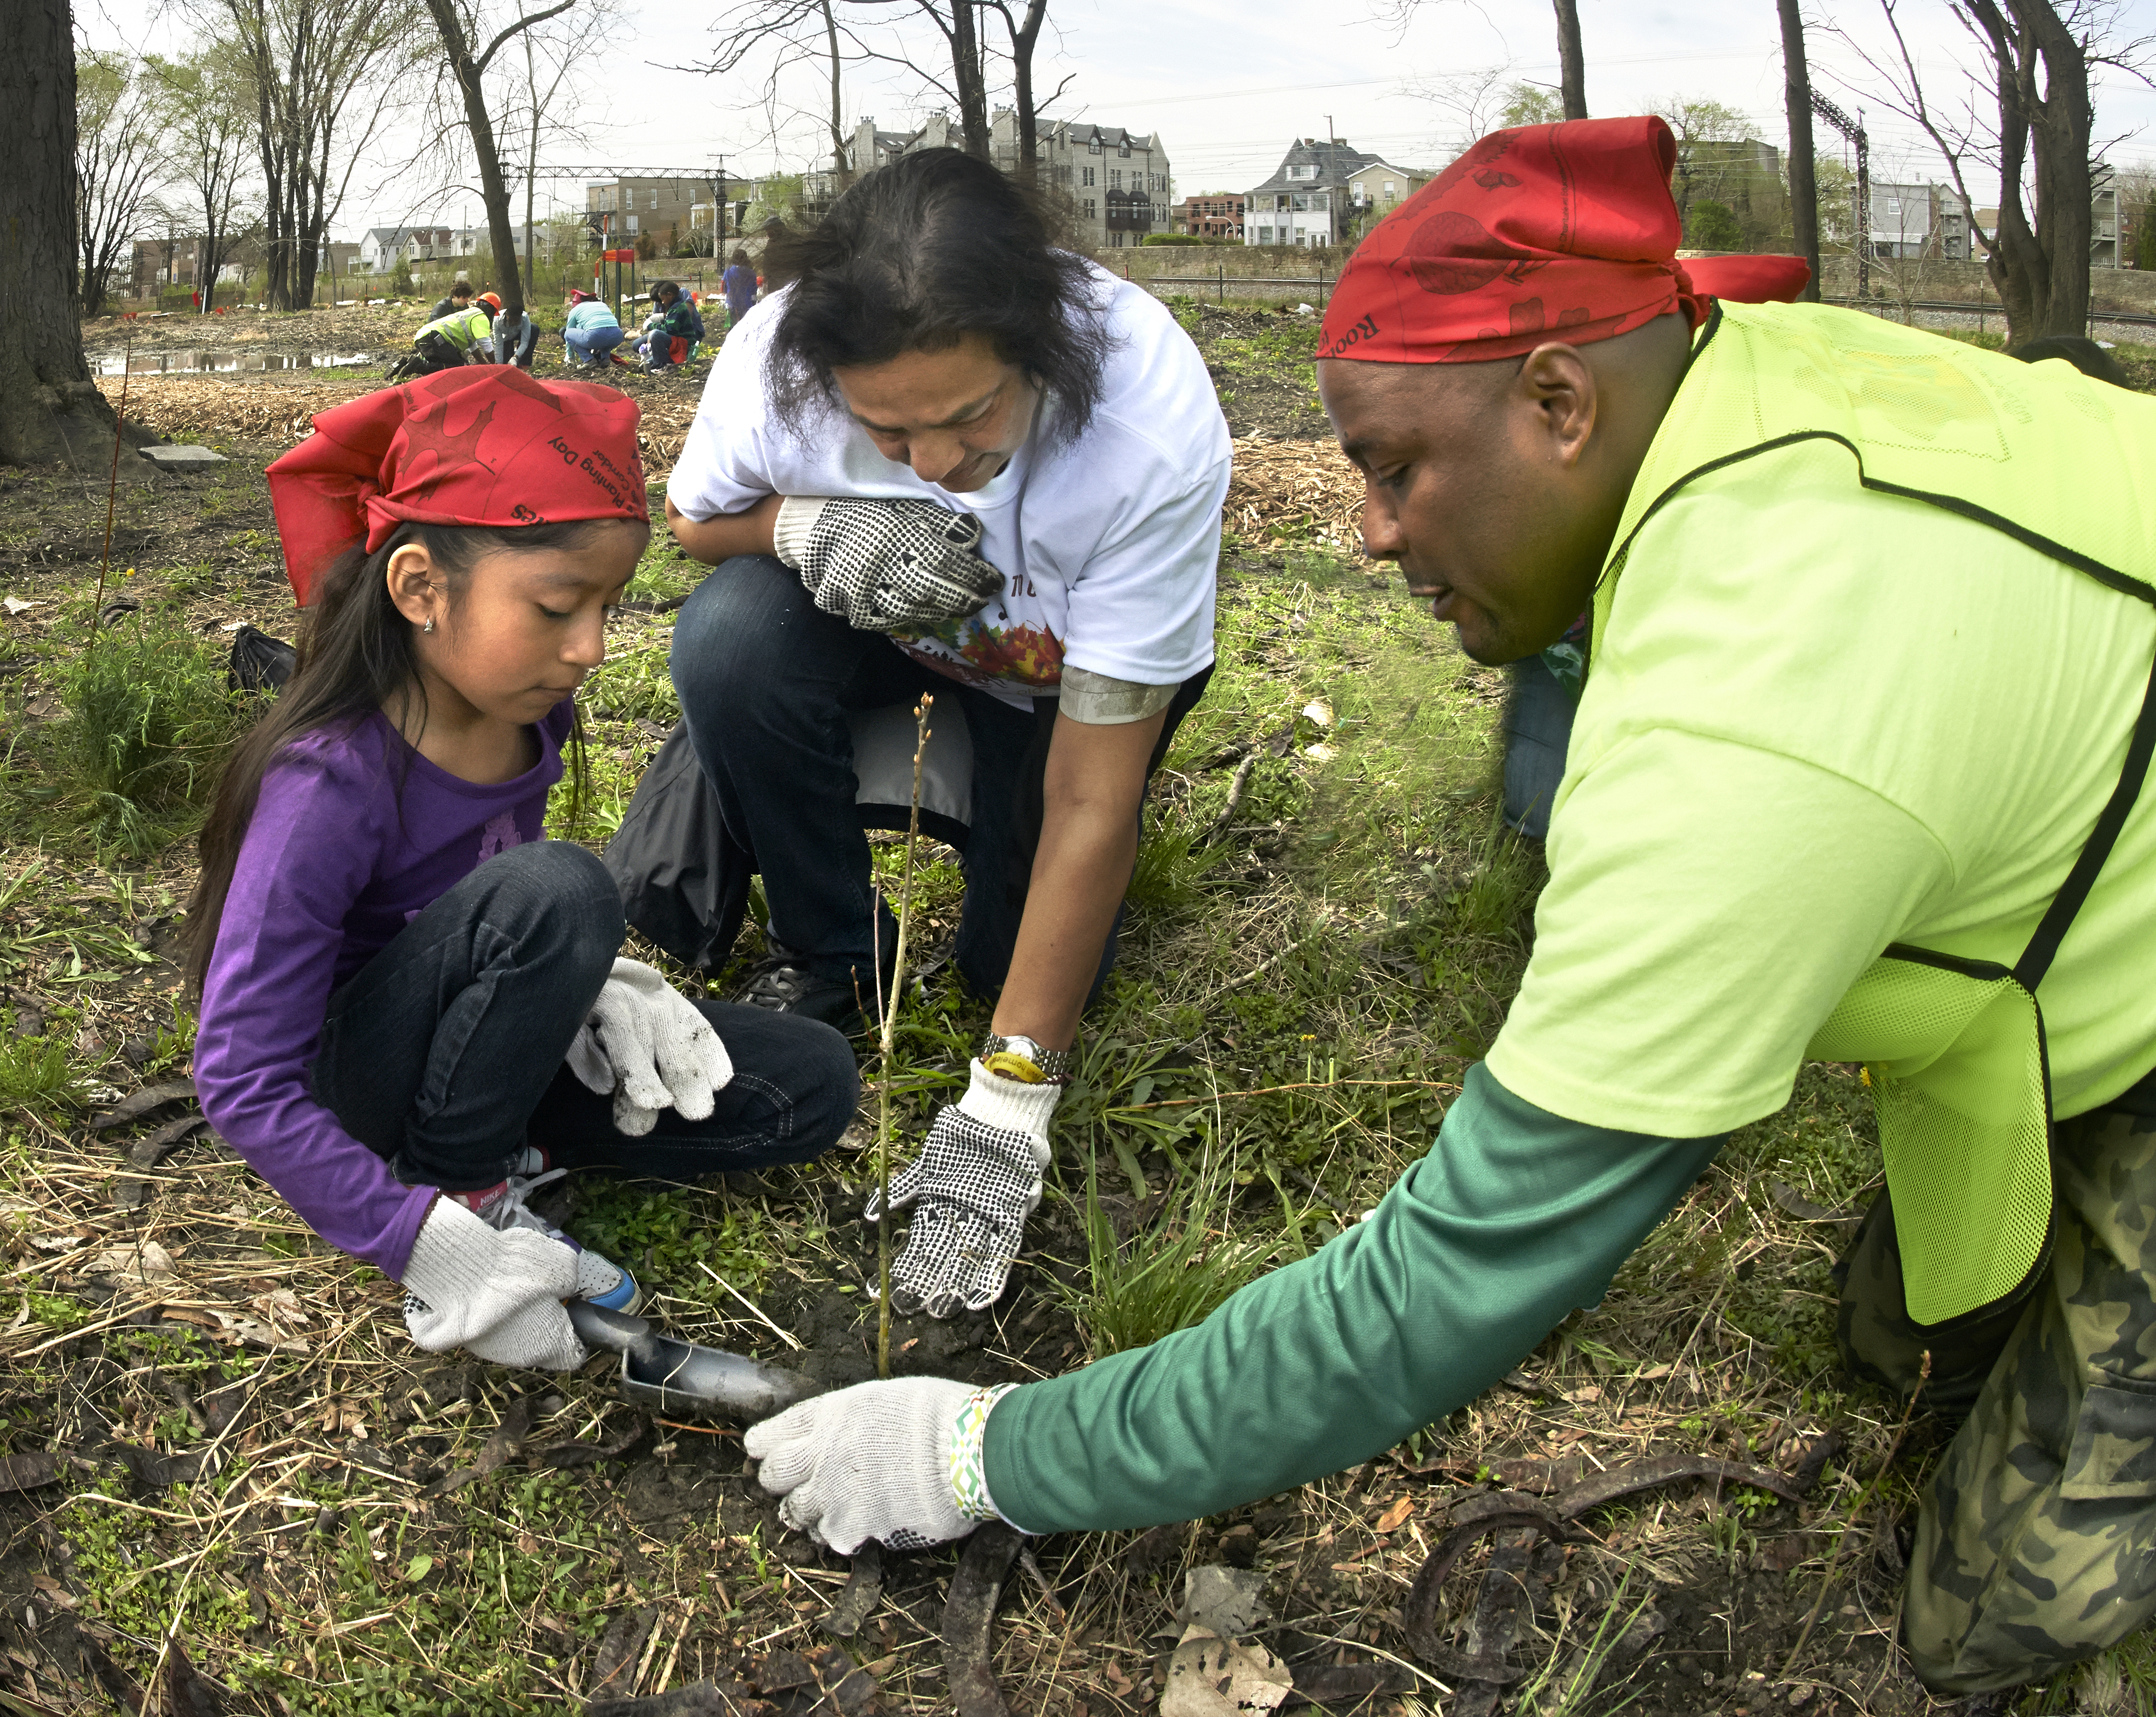 Two adults help a child plant a tree sapling in the ground.